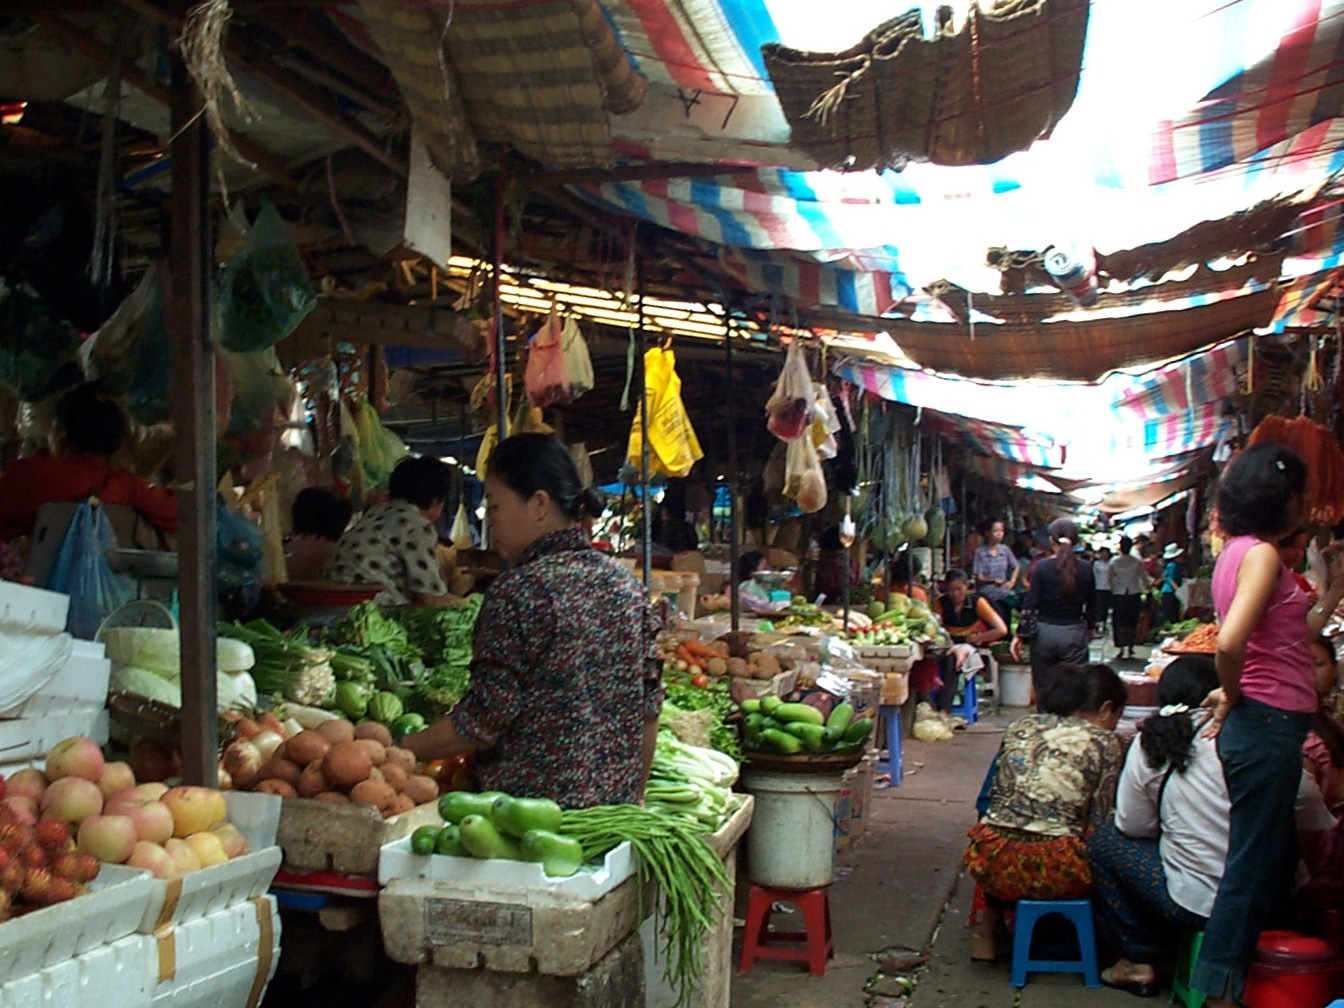 Vegetable market in Phnom Penh, Cambodia